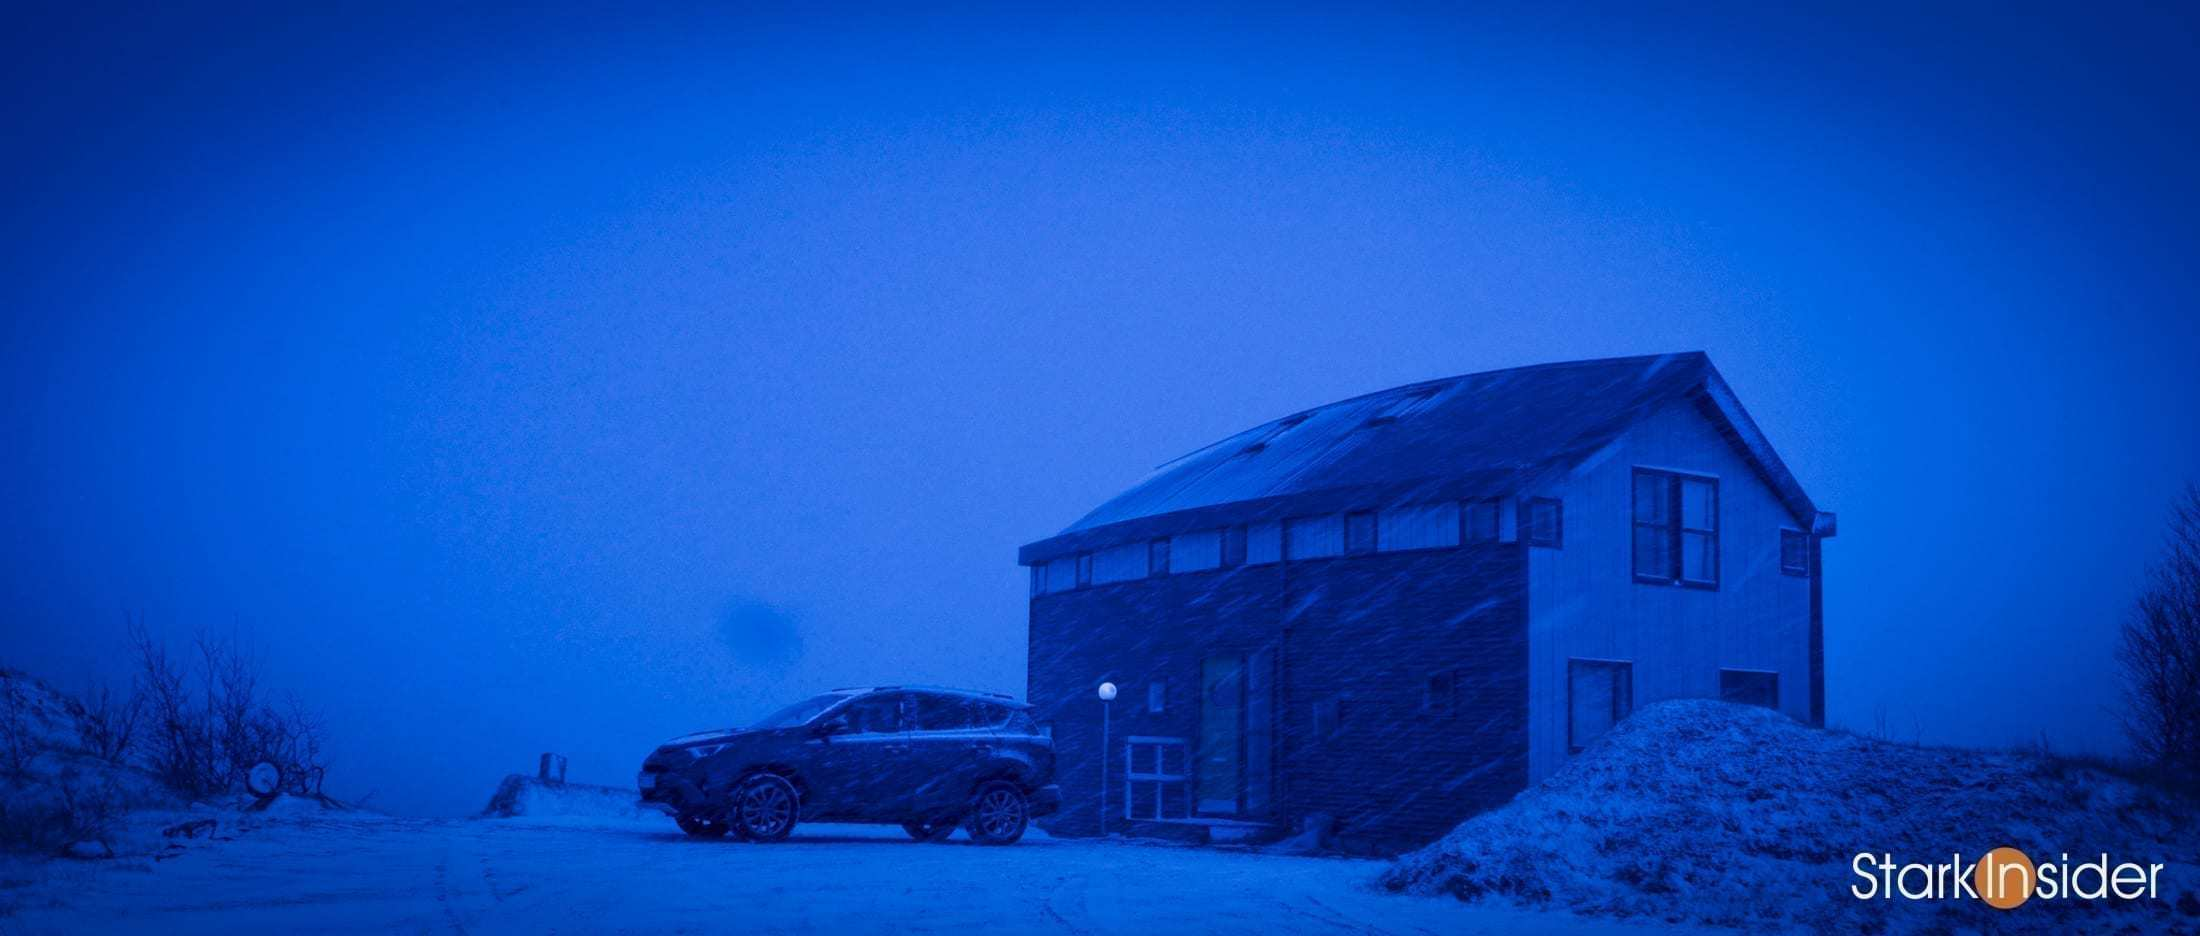 Made in Iceland - Film video by Clinton and Loni Stark - Airbnb location